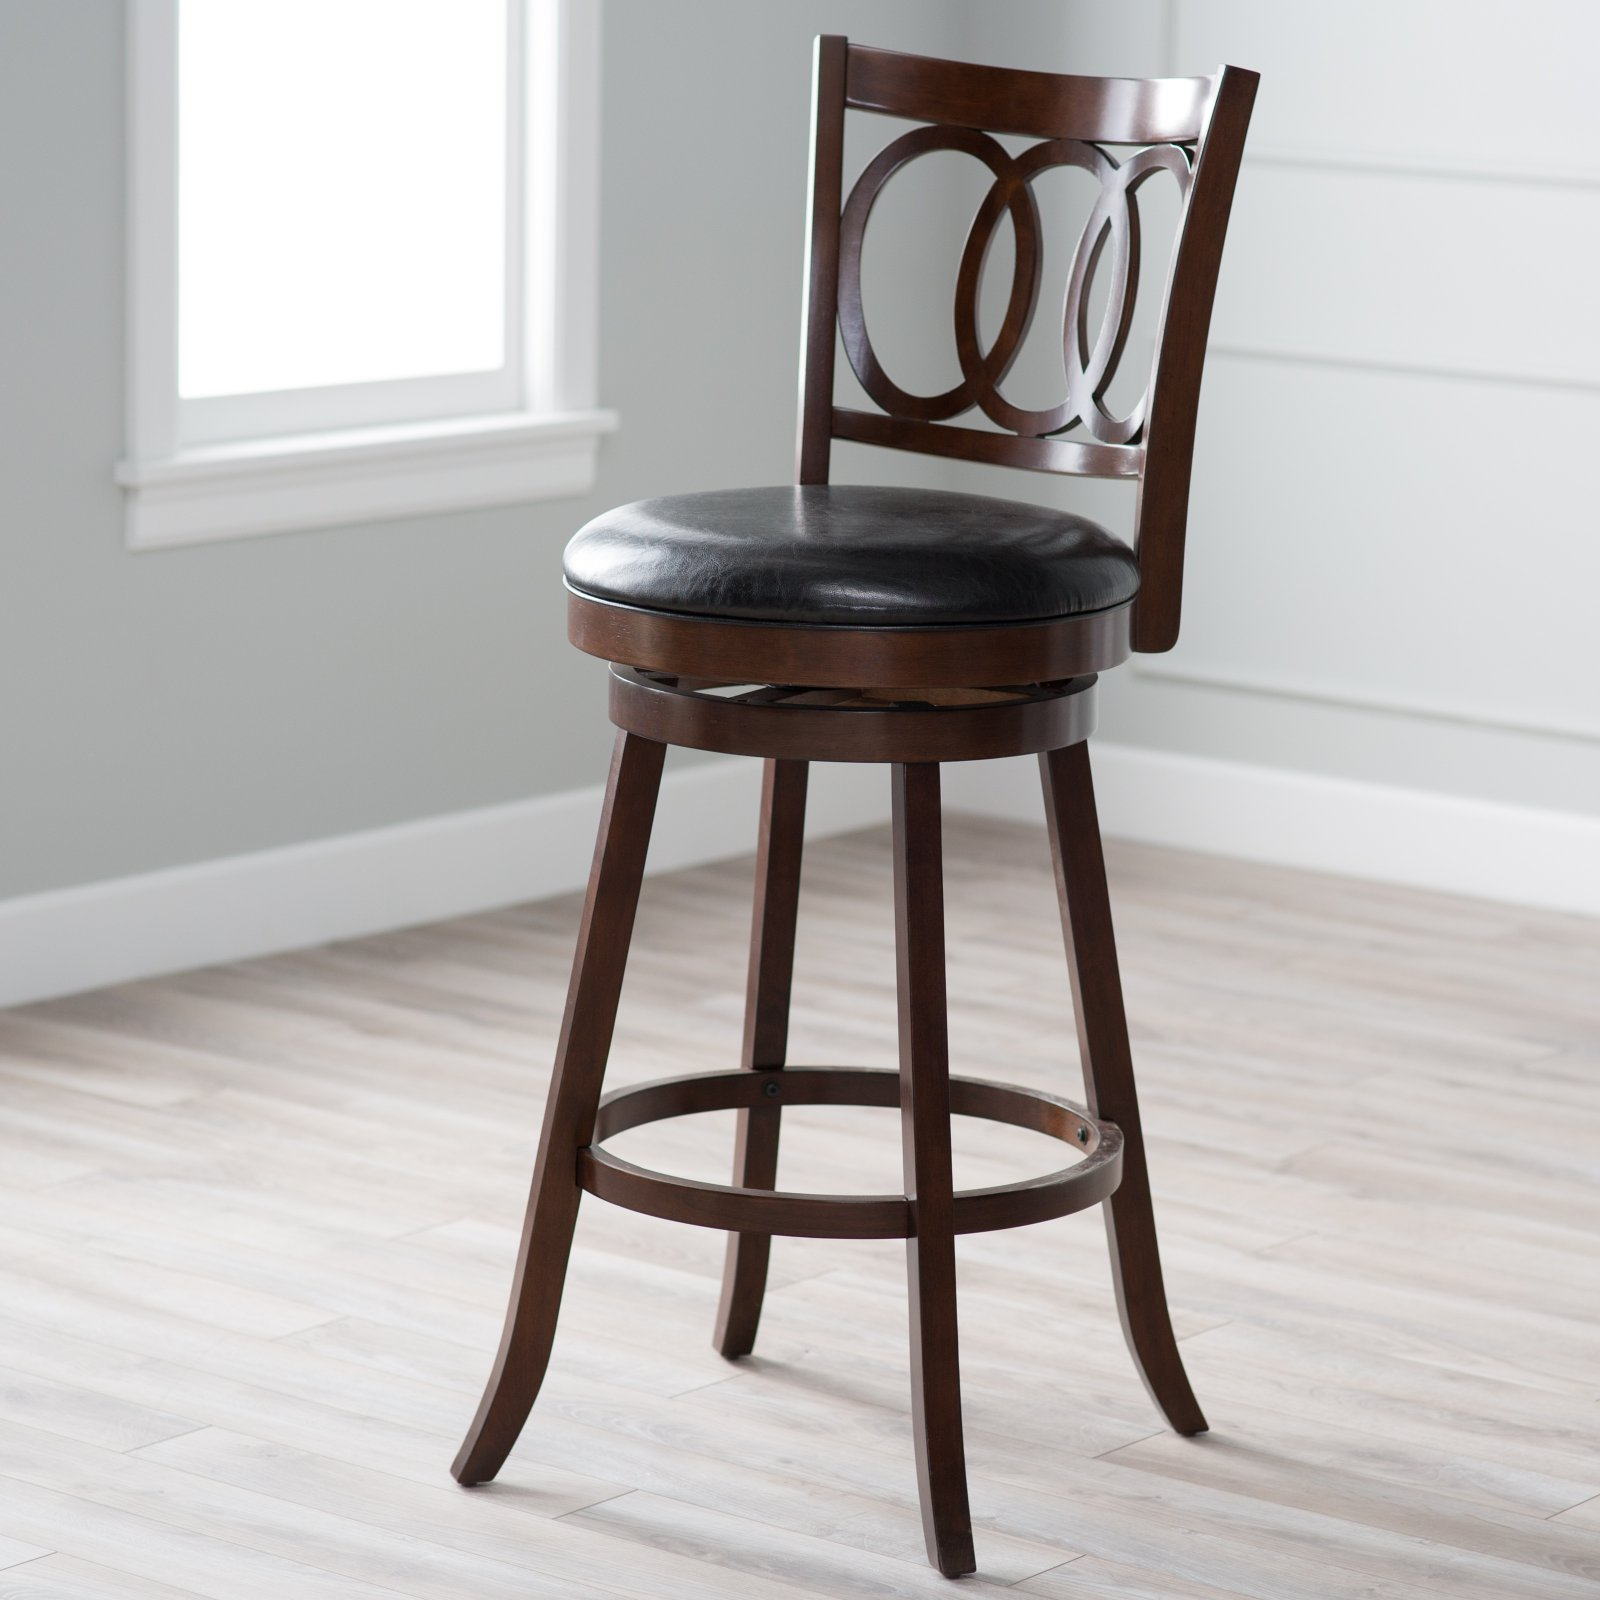 belham living woodward extratall swivel bar stool